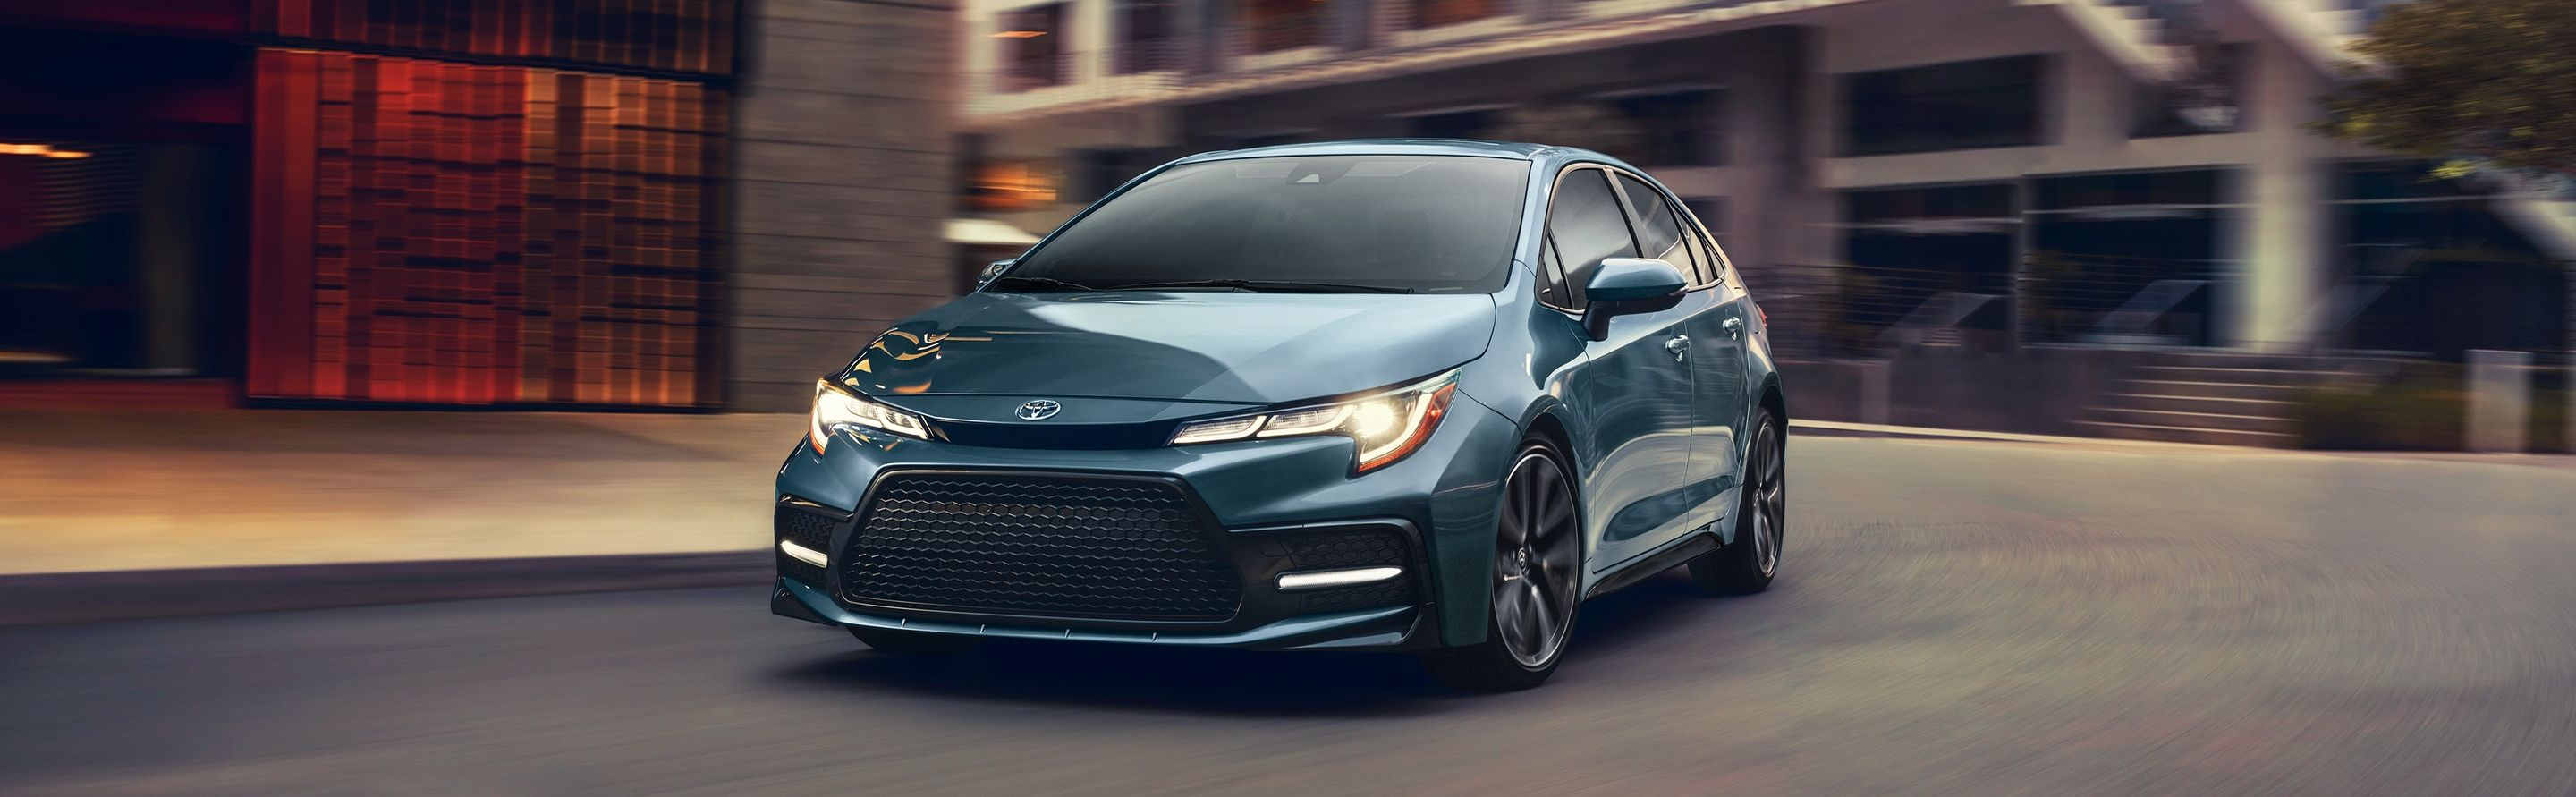 2020 Toyota Corolla for Sale in Kansas City, MO, 64114